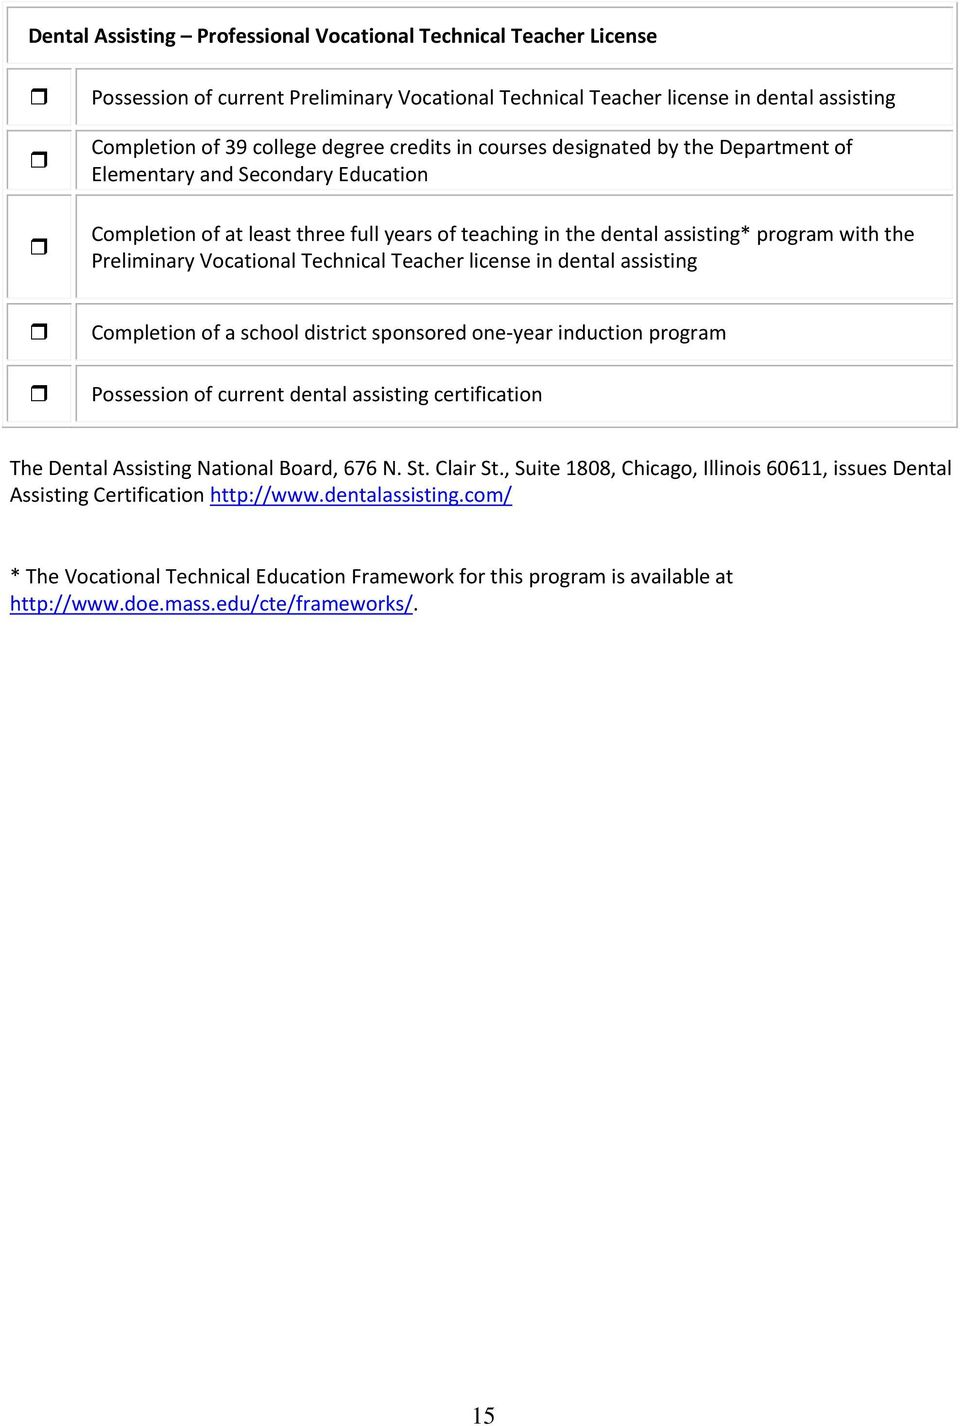 Vocational Technical Teacher license in dental assisting Possession of current dental assisting certification The Dental Assisting